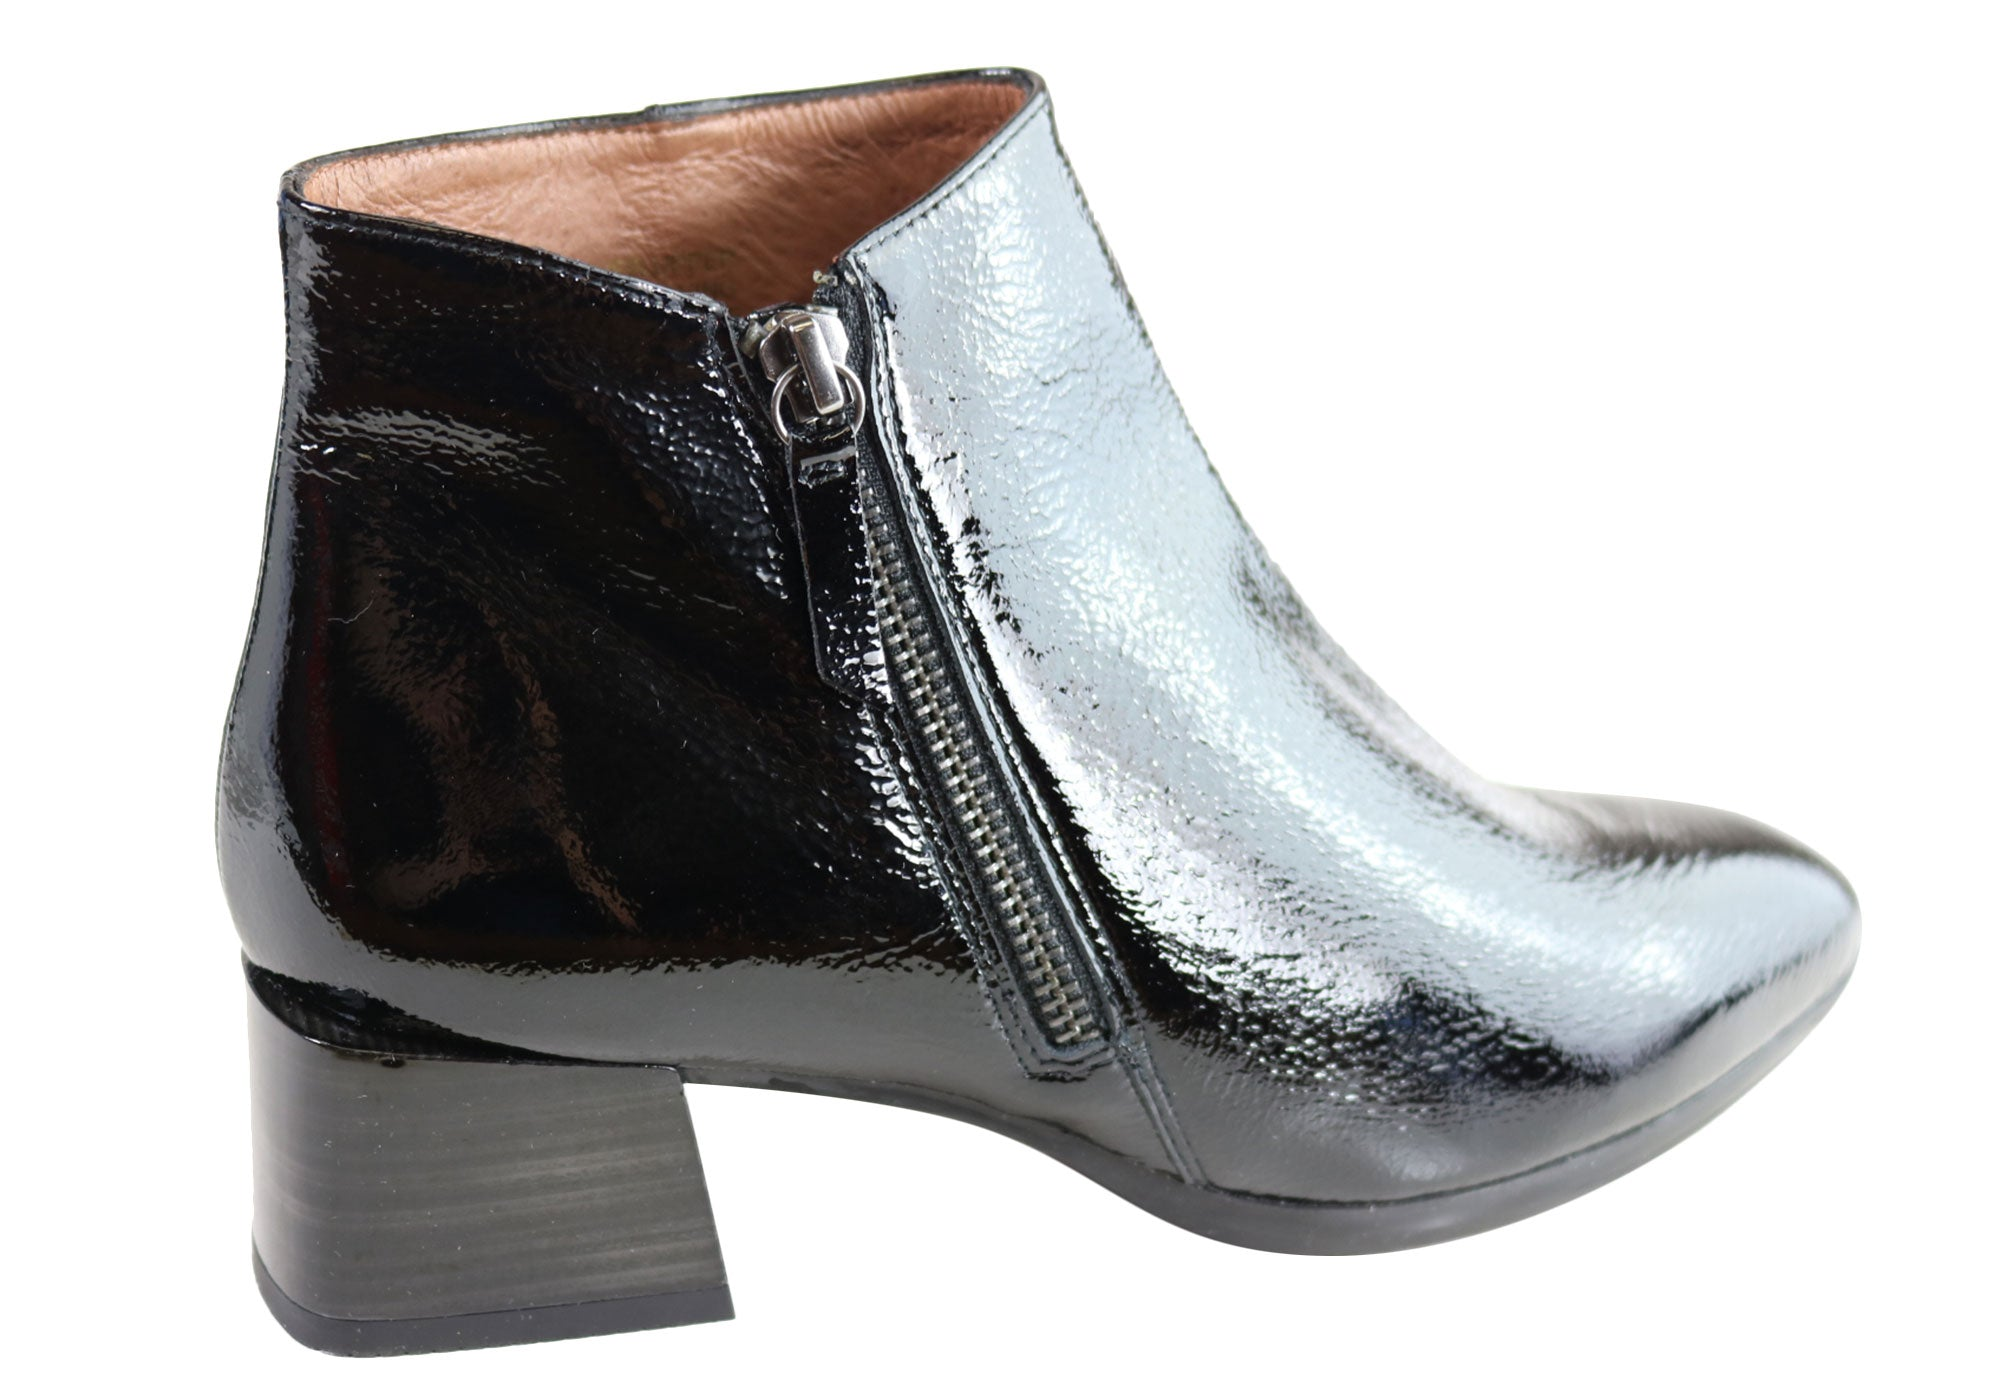 Hispanitas Womens HI99114 Nadia-I9 Leather Ankle Boots Made In Spain